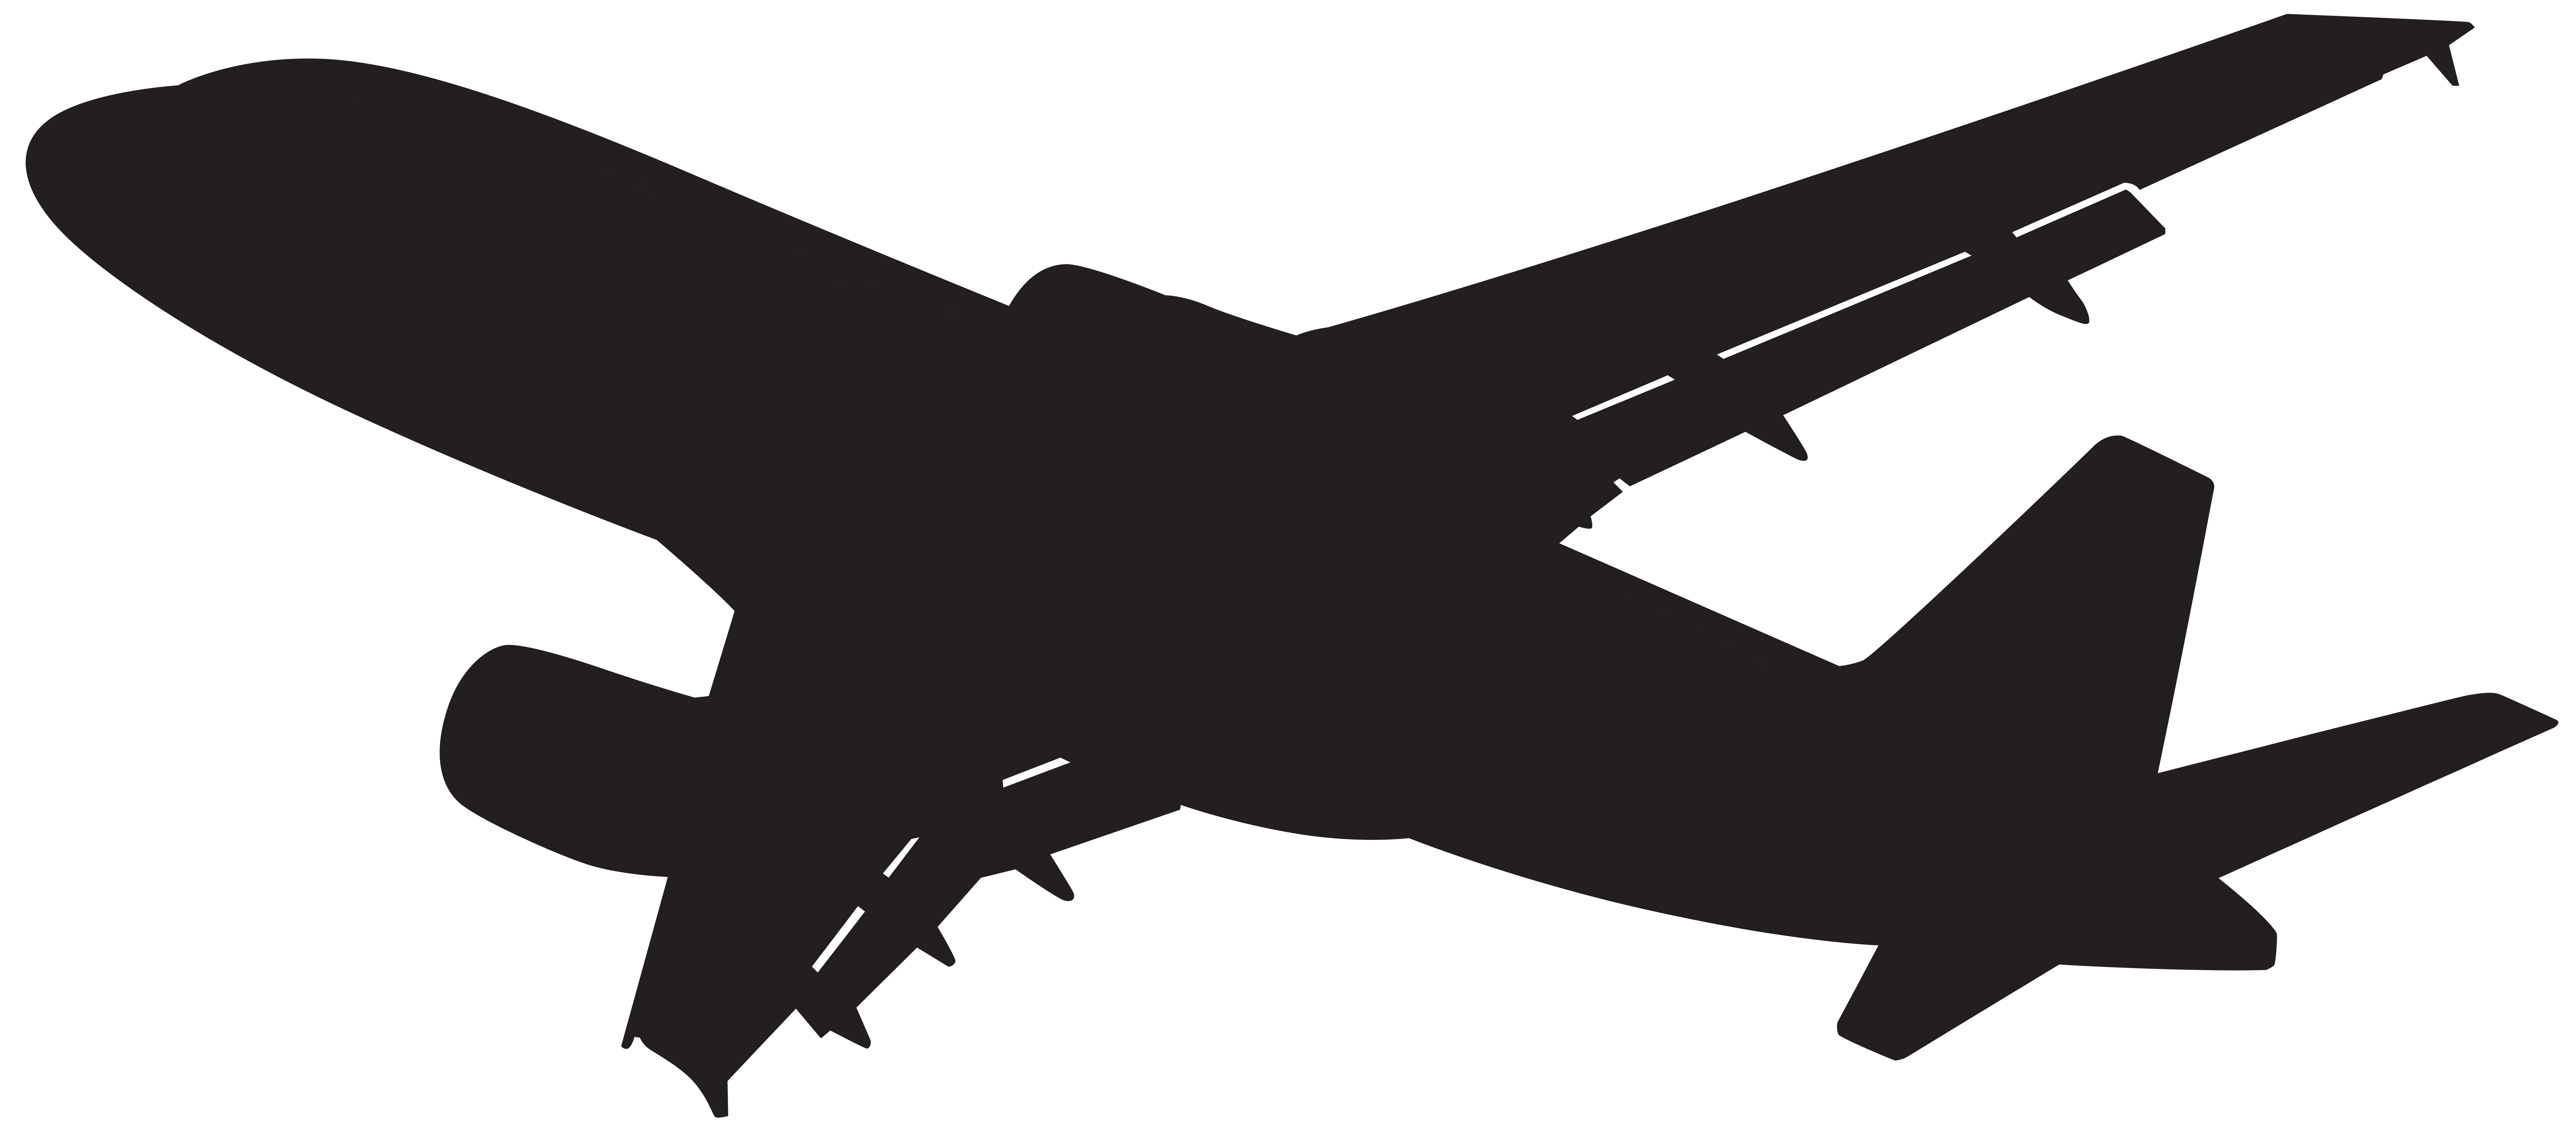 8000x3495 Plane Silhouette Png Clip Art Gallery Yopriceville